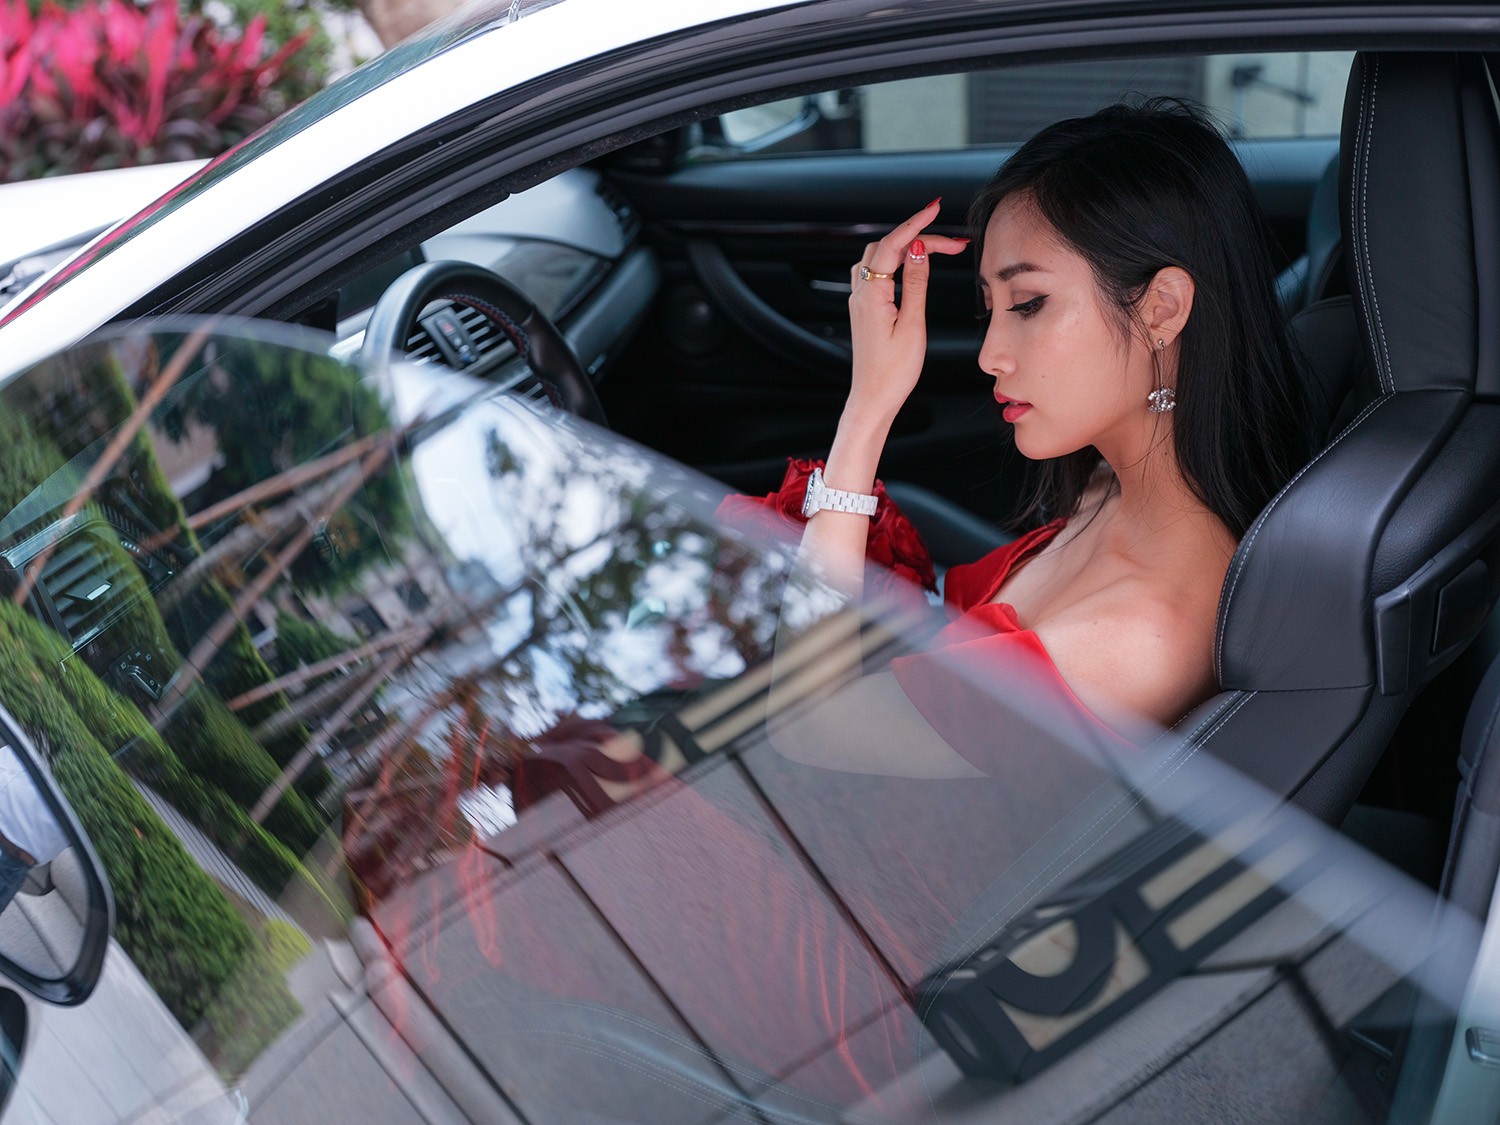 9 Days of Valentine – Day 3: Take A Road Trip   Of Leather and Lace - Fashion & Travel Blog by Tina Lee   valentines date ideas, valentines day decor, red roses, bmw m4, sportscar, red dress, valentines dress, valentines outfit ideas